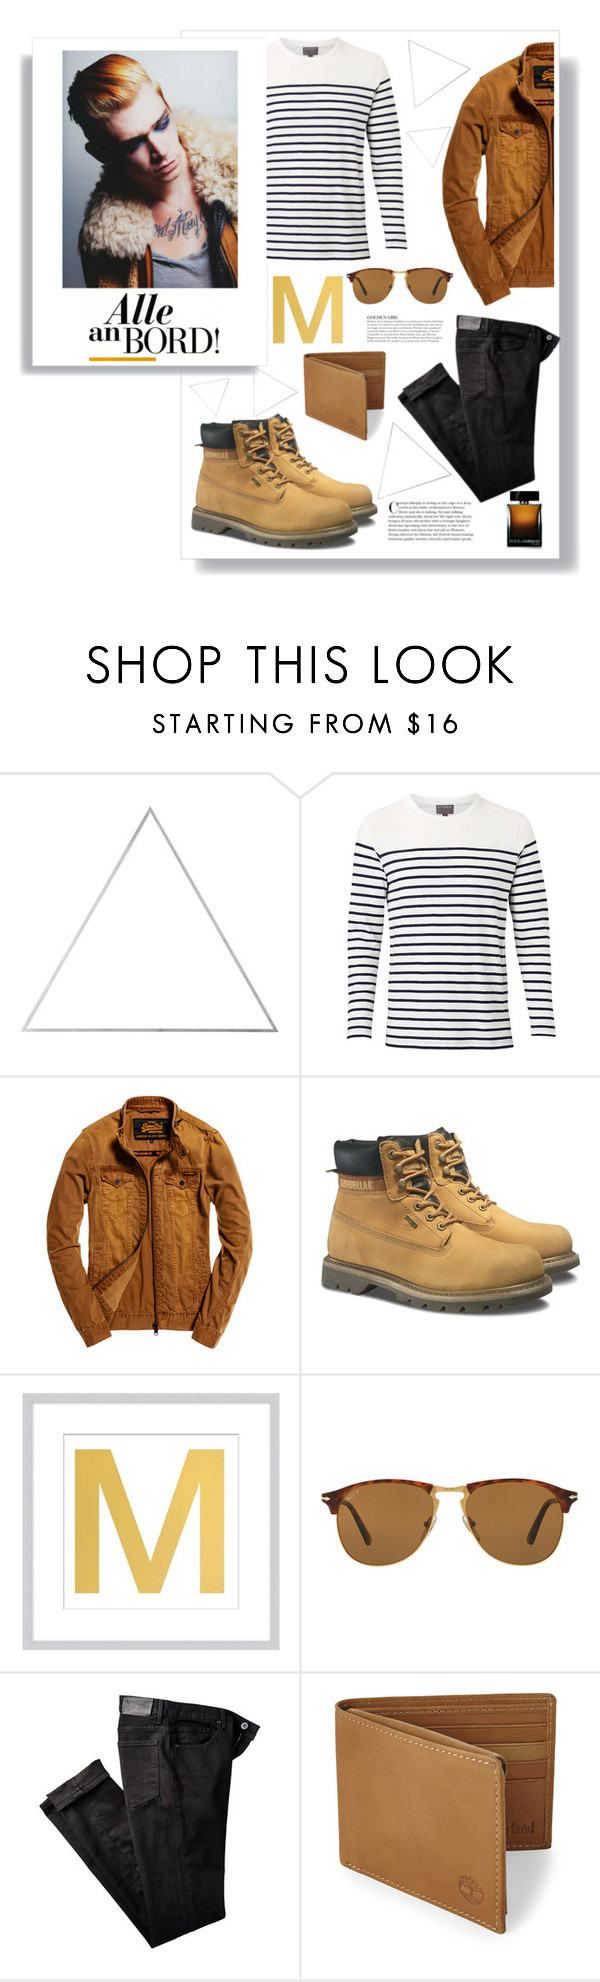 """""""On the low"""" by lolapastel ❤ liked on Polyvore featuring WALL, Witchery, Superdry, Caterpillar, Pottery Barn, Persol, Paige Denim, KAROLINA, Timberland and Dolce&Gabbana"""